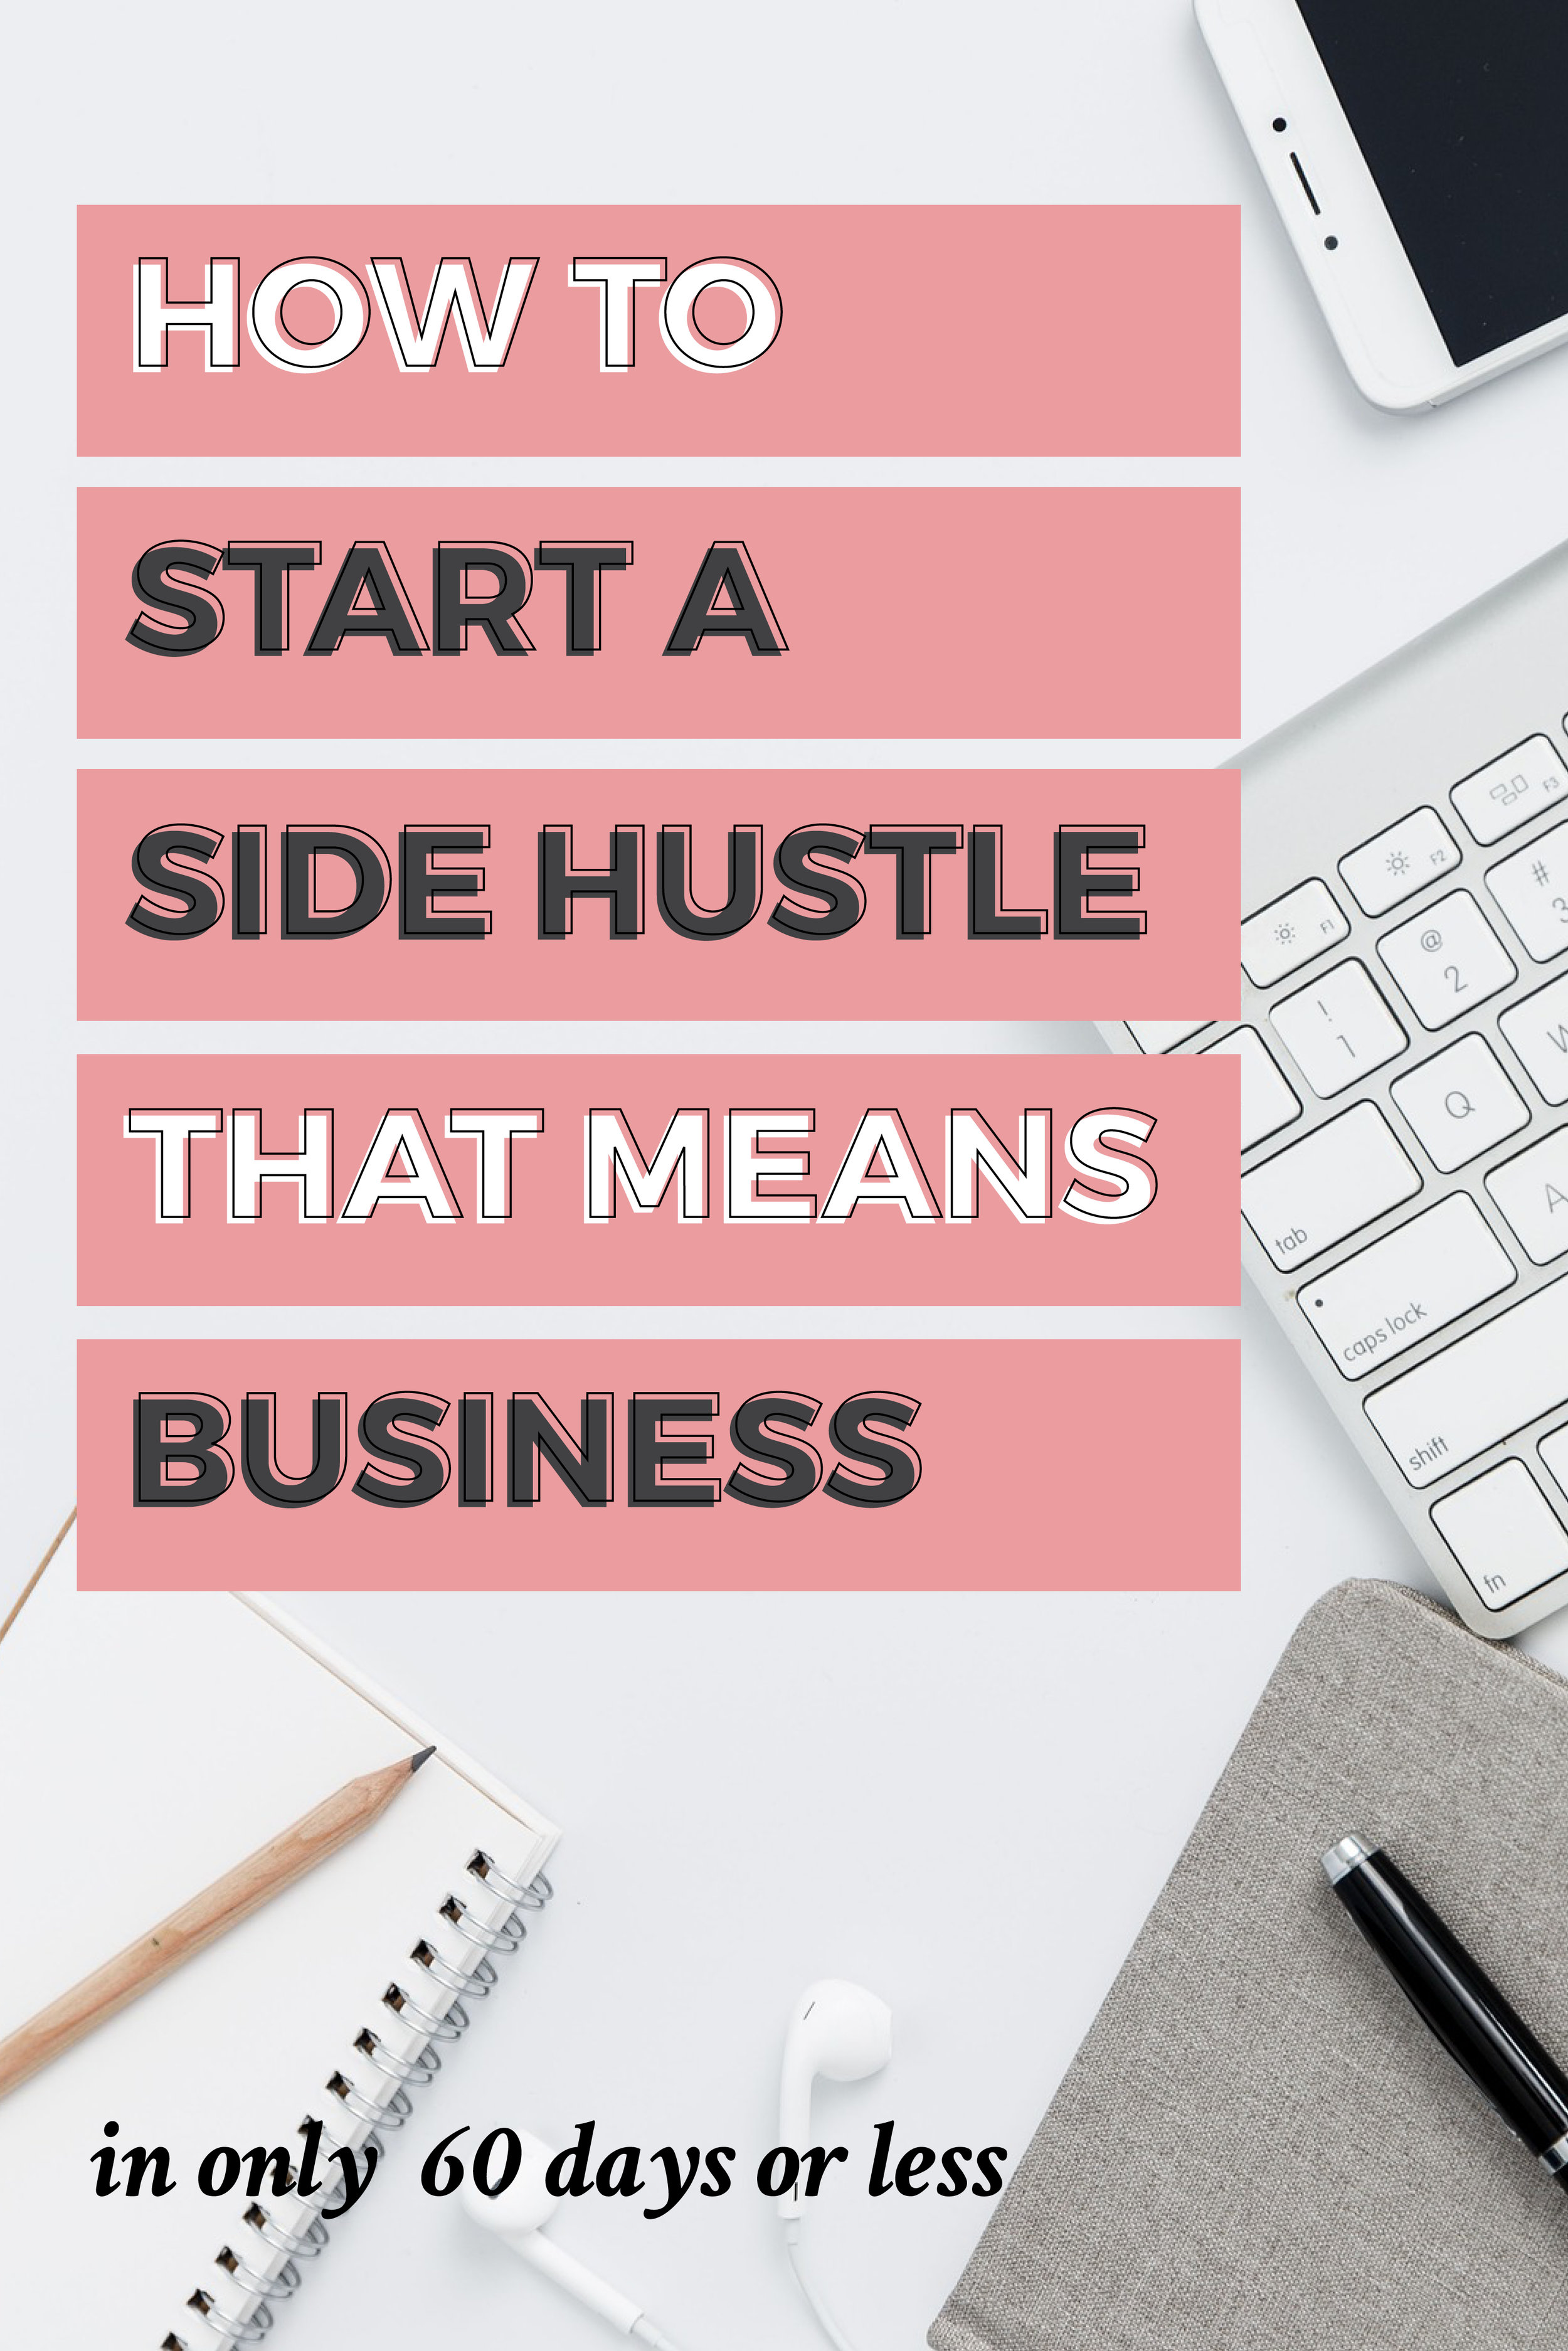 Things I've Created Using Adobe InDesign: Self Published Book - The DIY Side Hustle Starter Guide by Yuri Gibson of viaYuri.com